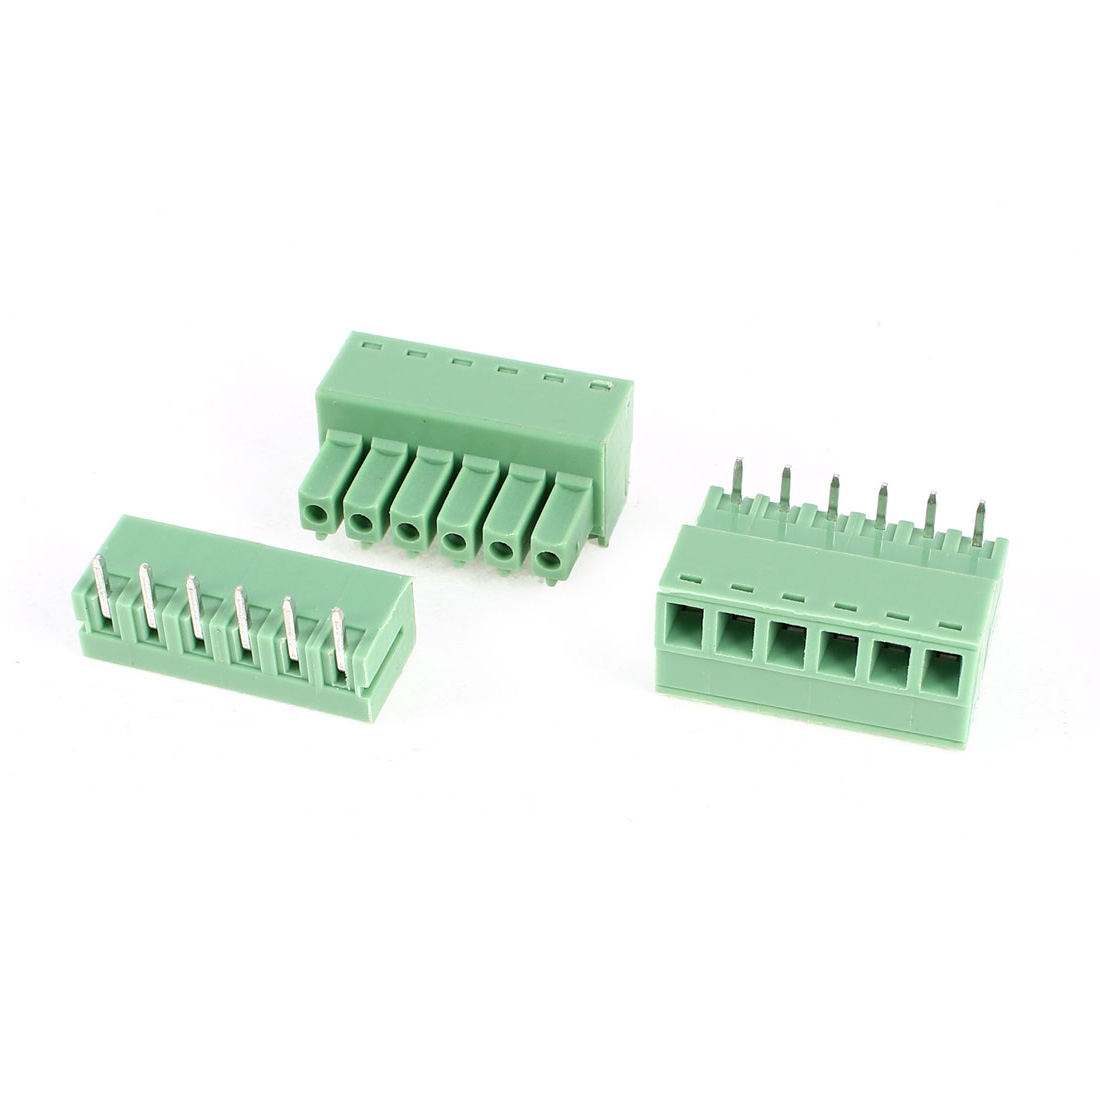 2Pcs 2EDG3.81-6P 3.81mm Pitch 6 Bending Pins Female and Male Wire Pluggable Terminal Barrier Strip Block Connector 300V 8A